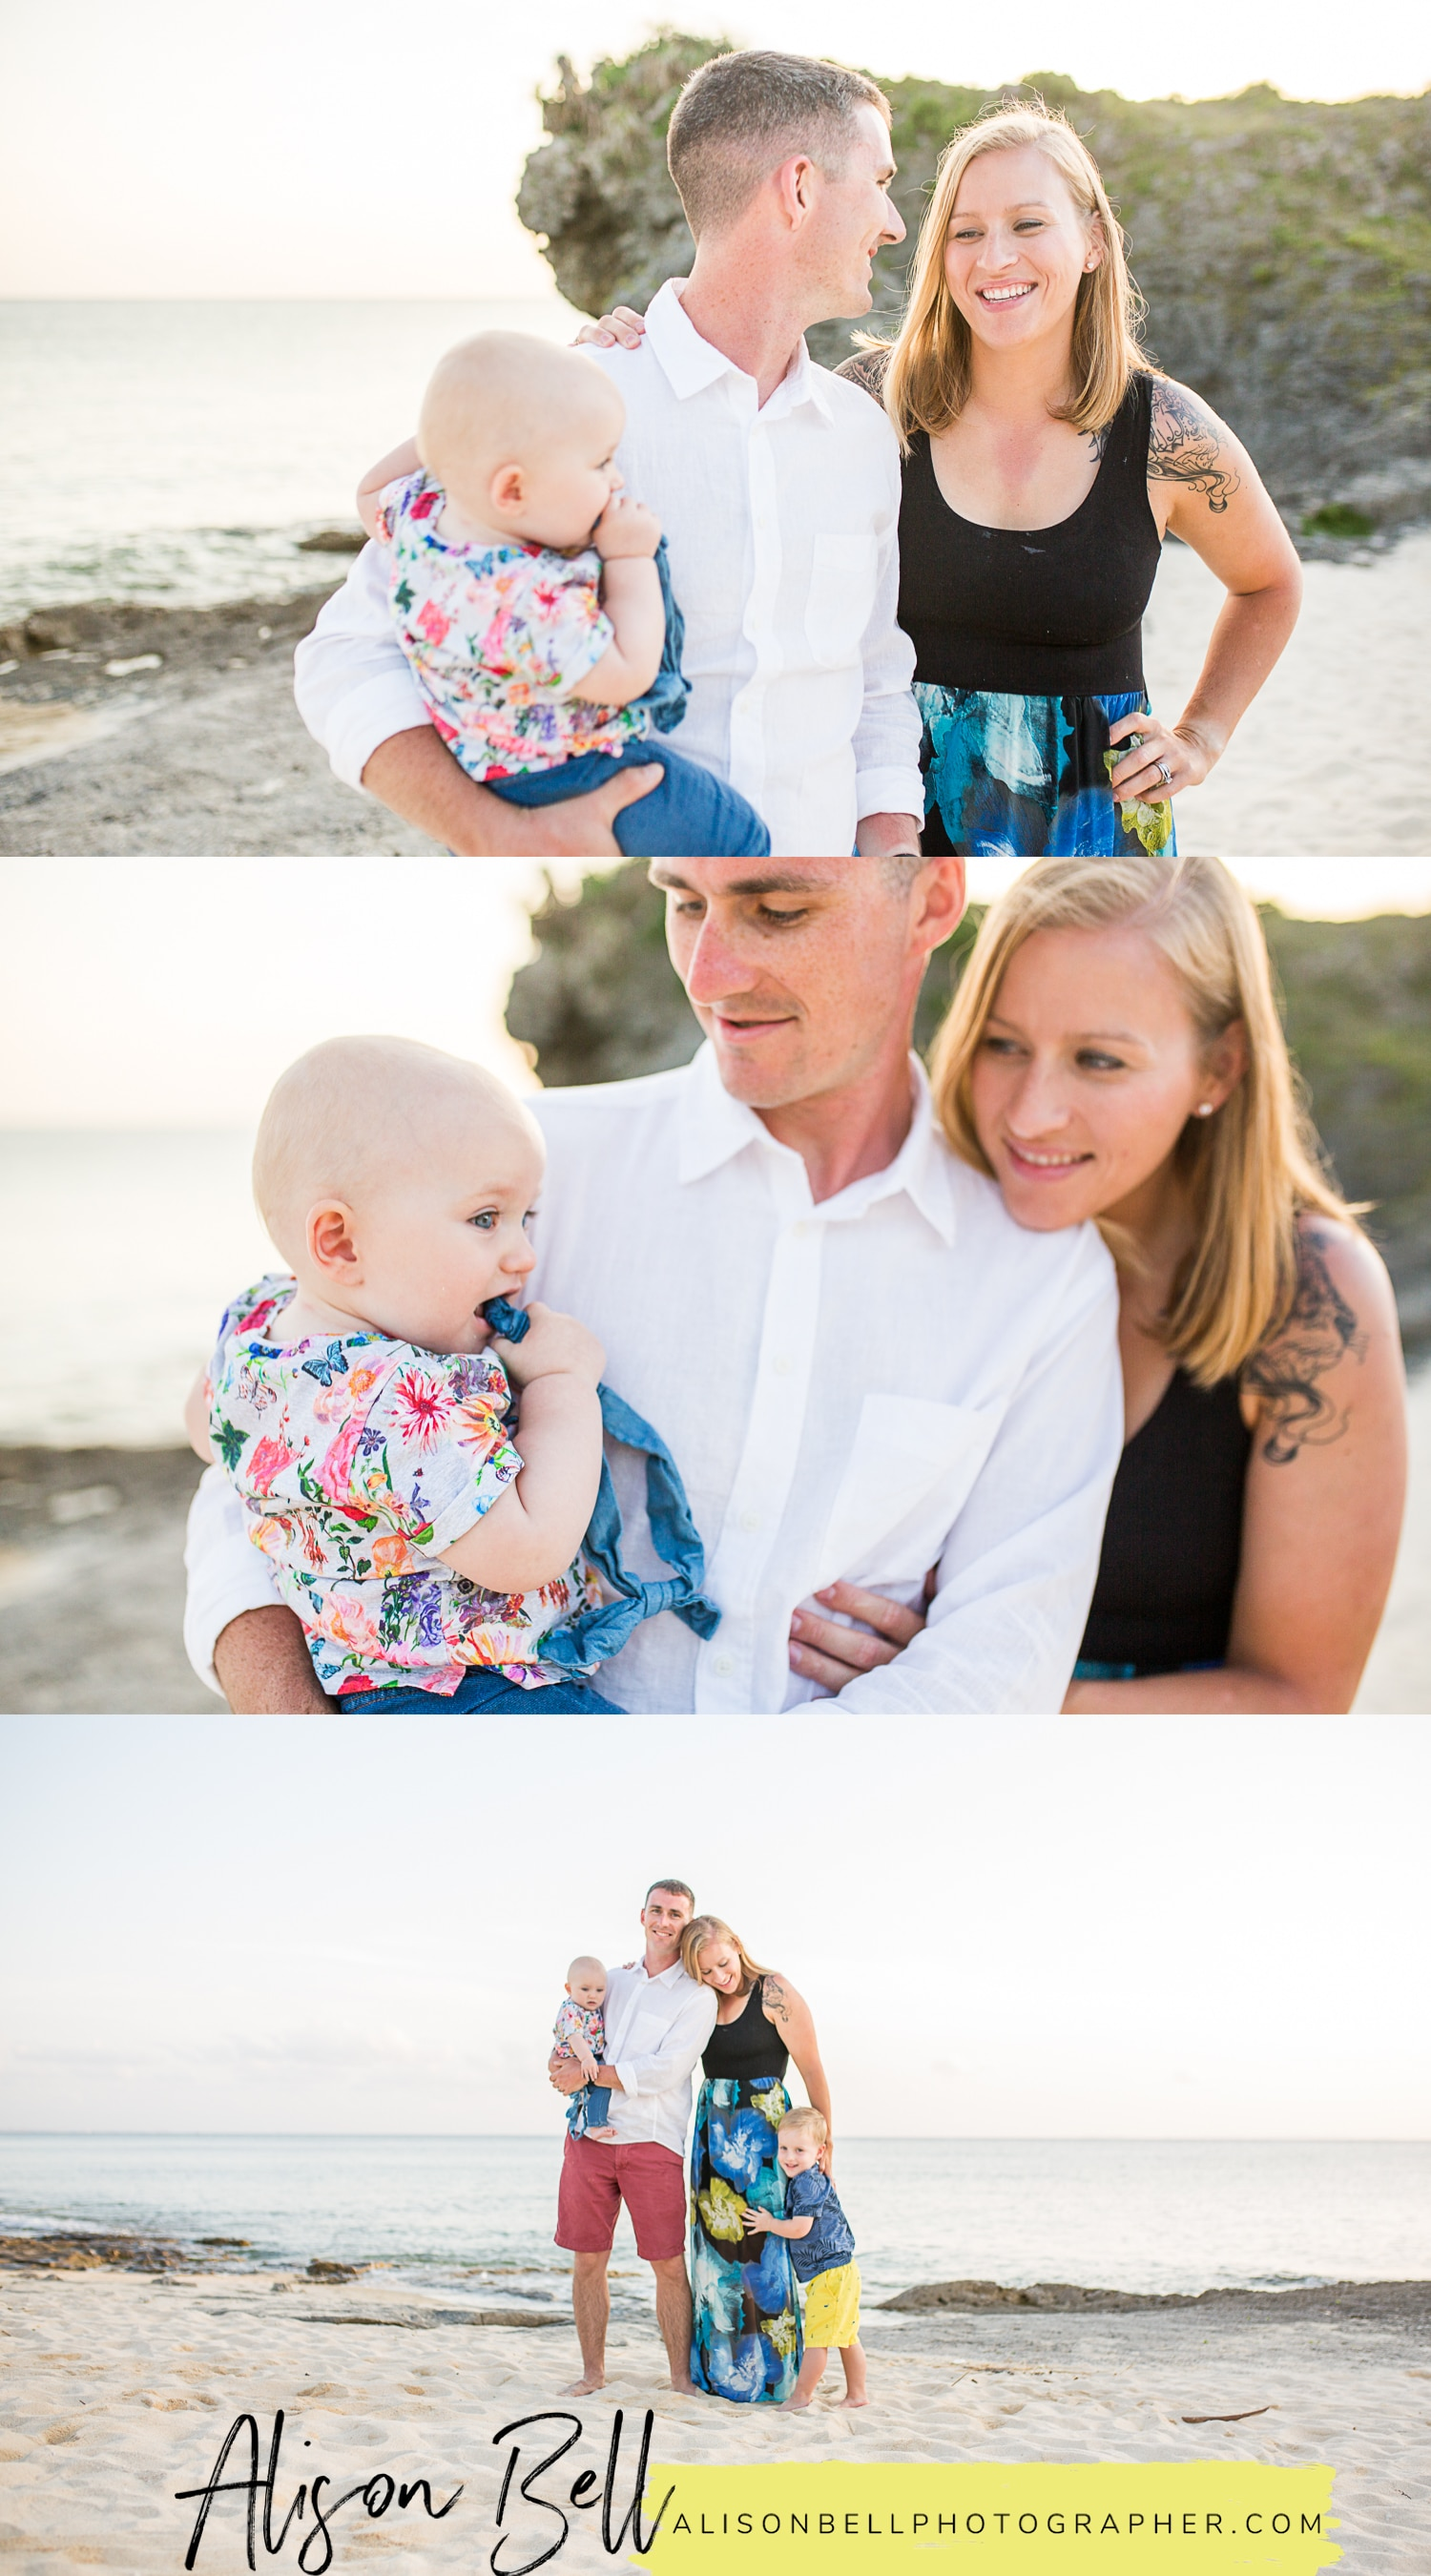 Playful, stress free family photos with Alison Bell, Photographer on the beach in Okinawa, Japan.